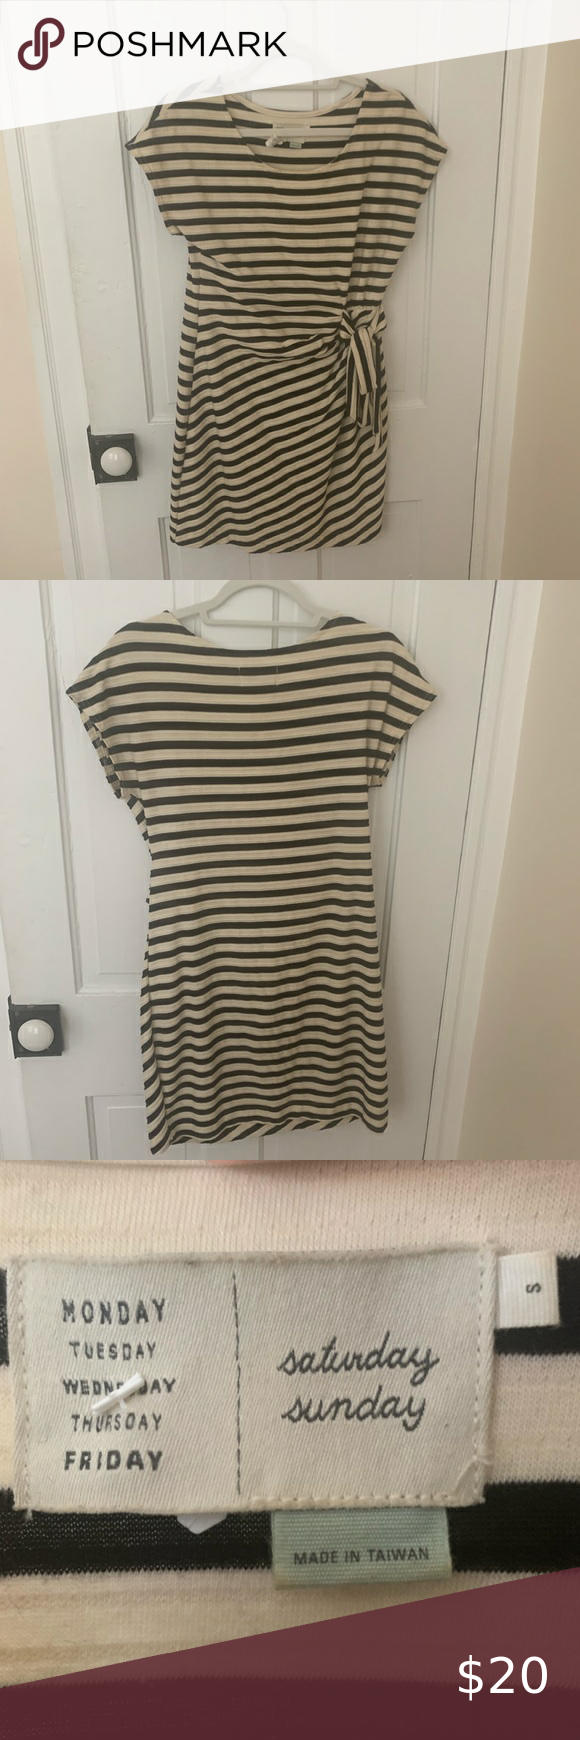 Anthropologie Striped Tie Dress